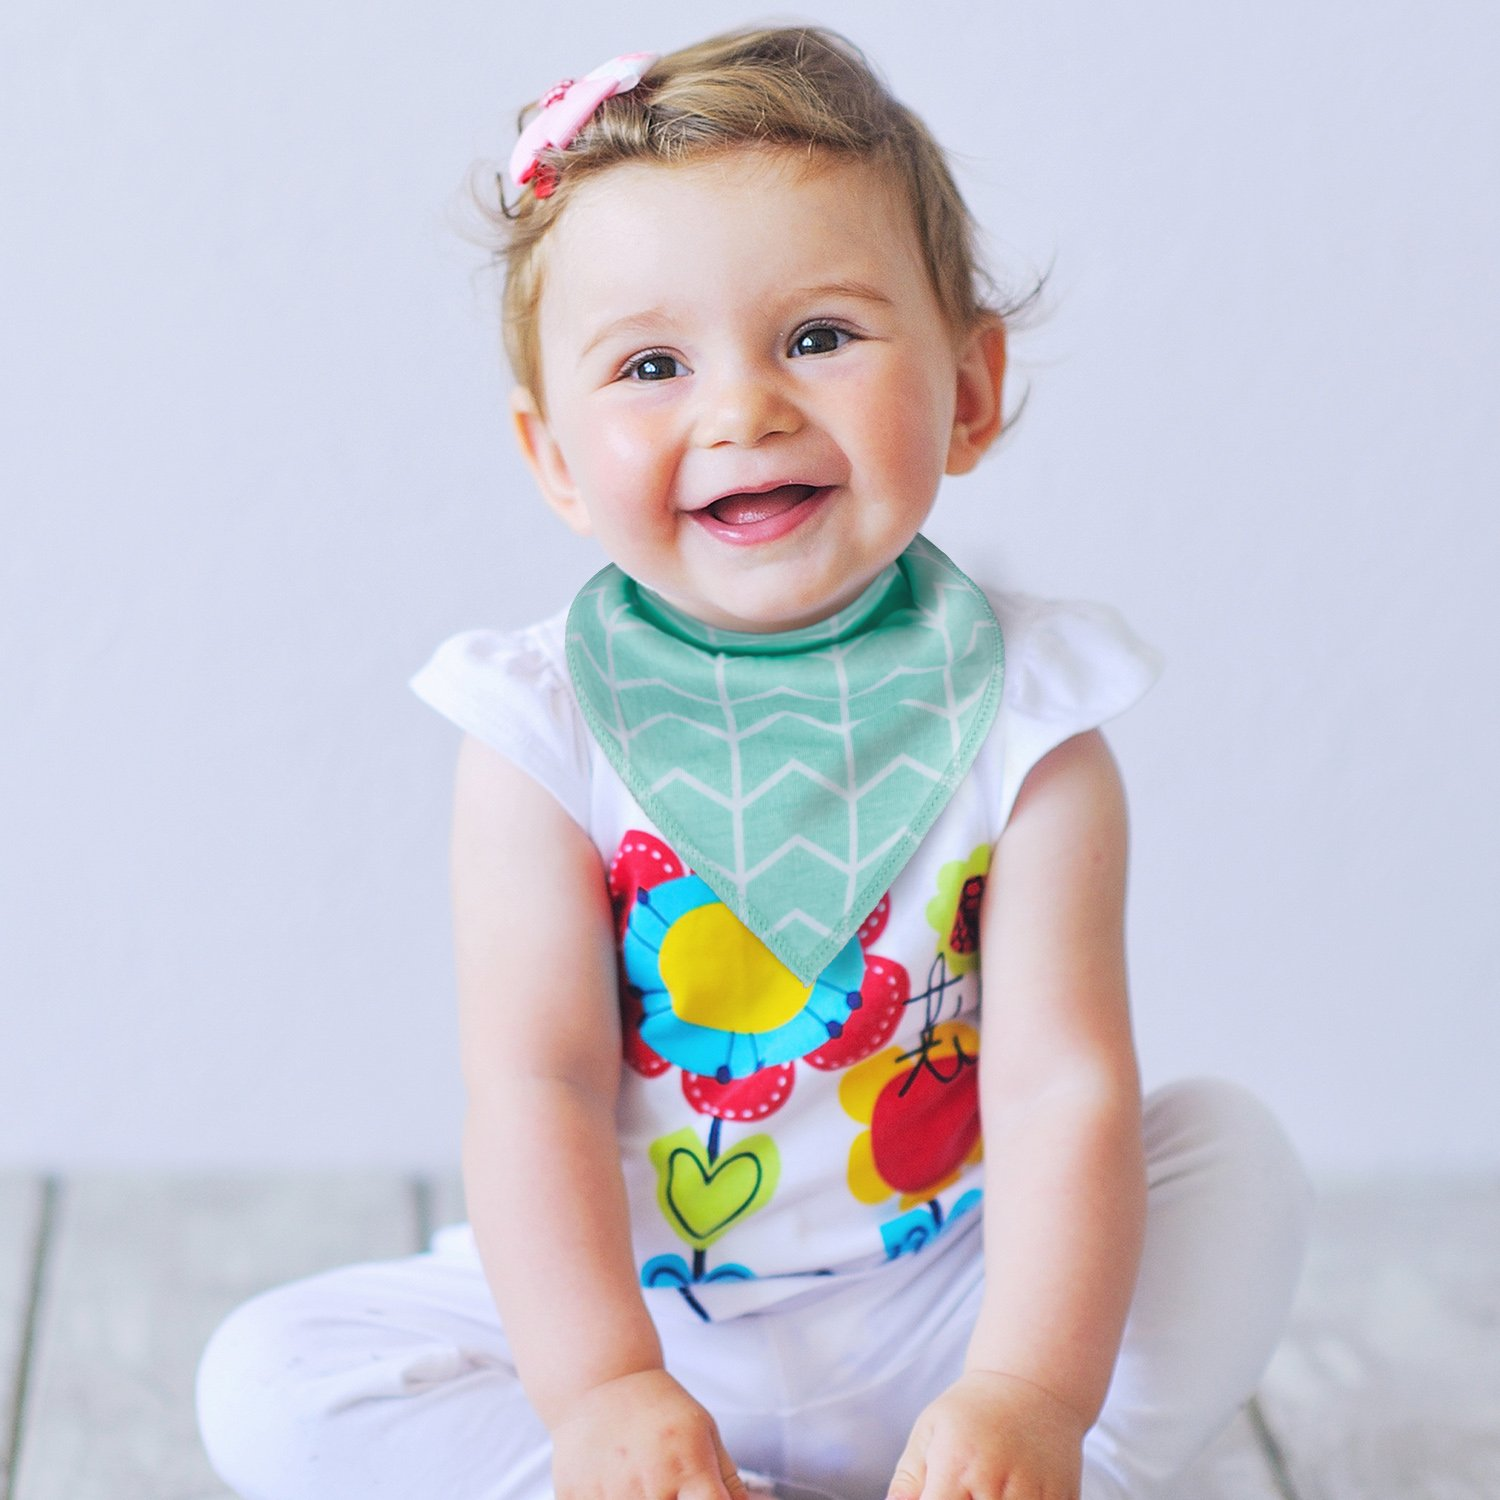 10-Pack Baby Bandana Drool Bibs for Drooling and Teething Boys Girls by MiiYoung by MiiYoung (Image #6)